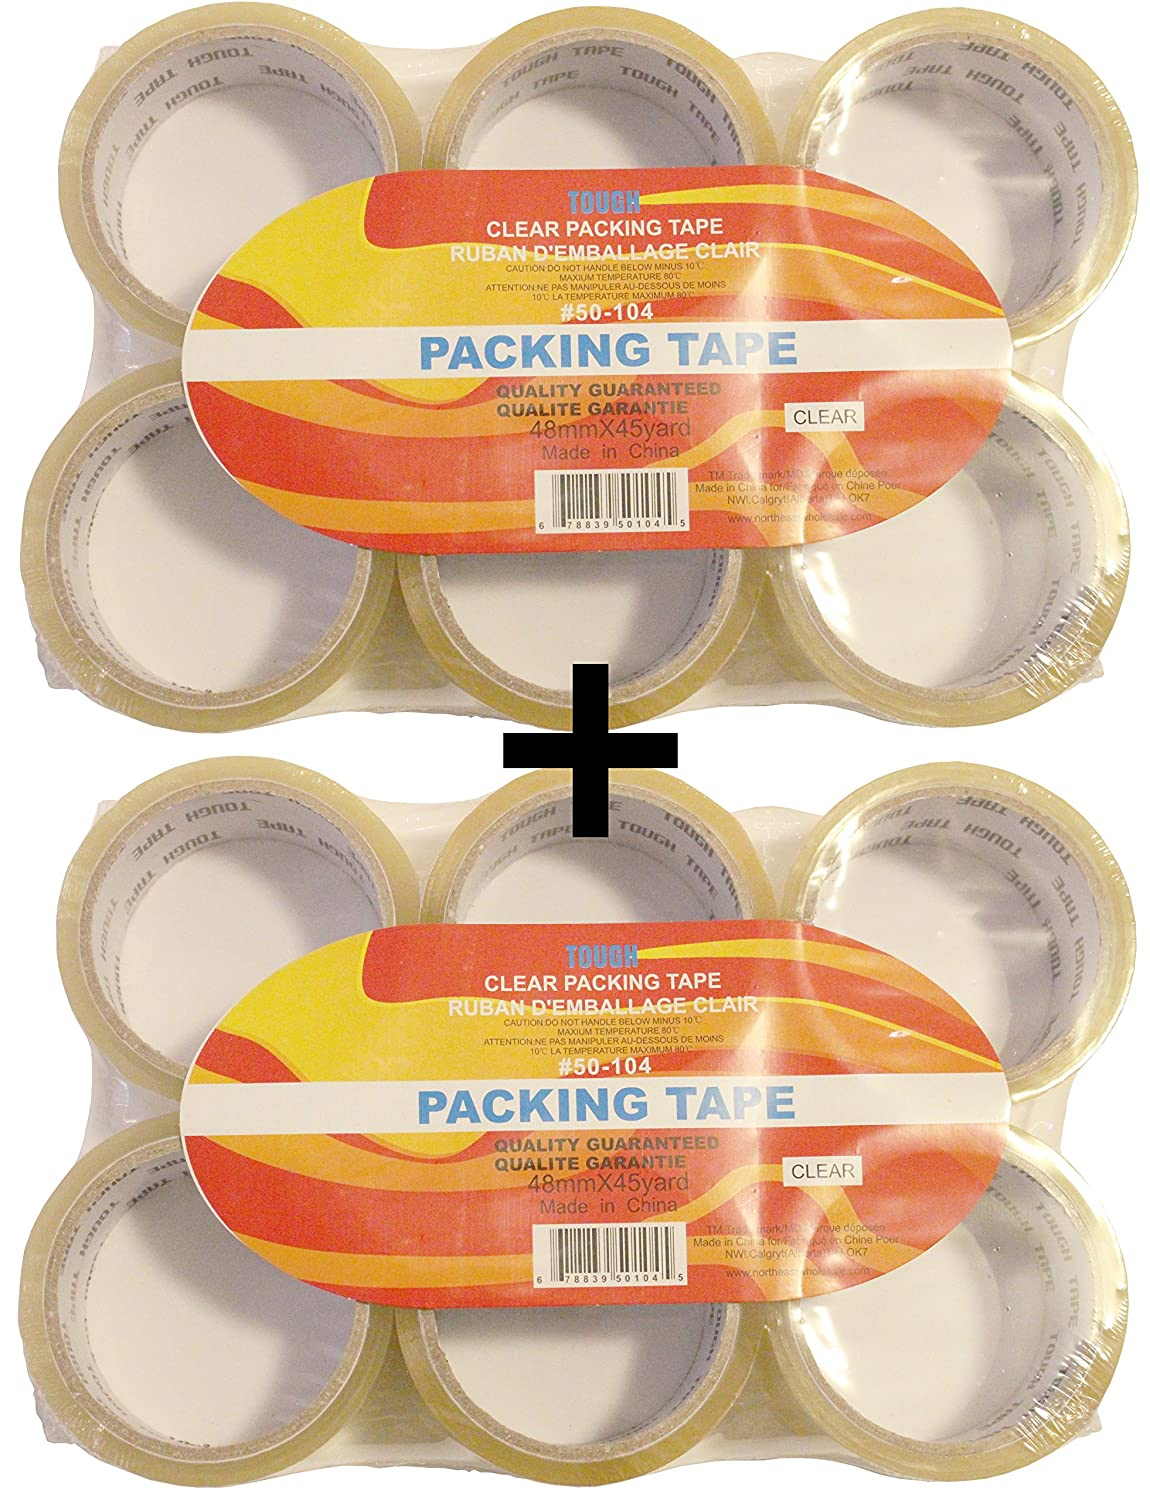 Extra Sticky Tough Clear Shipping Packaging Tape, 48mm x 45yard Per Roll, 12 Rolls